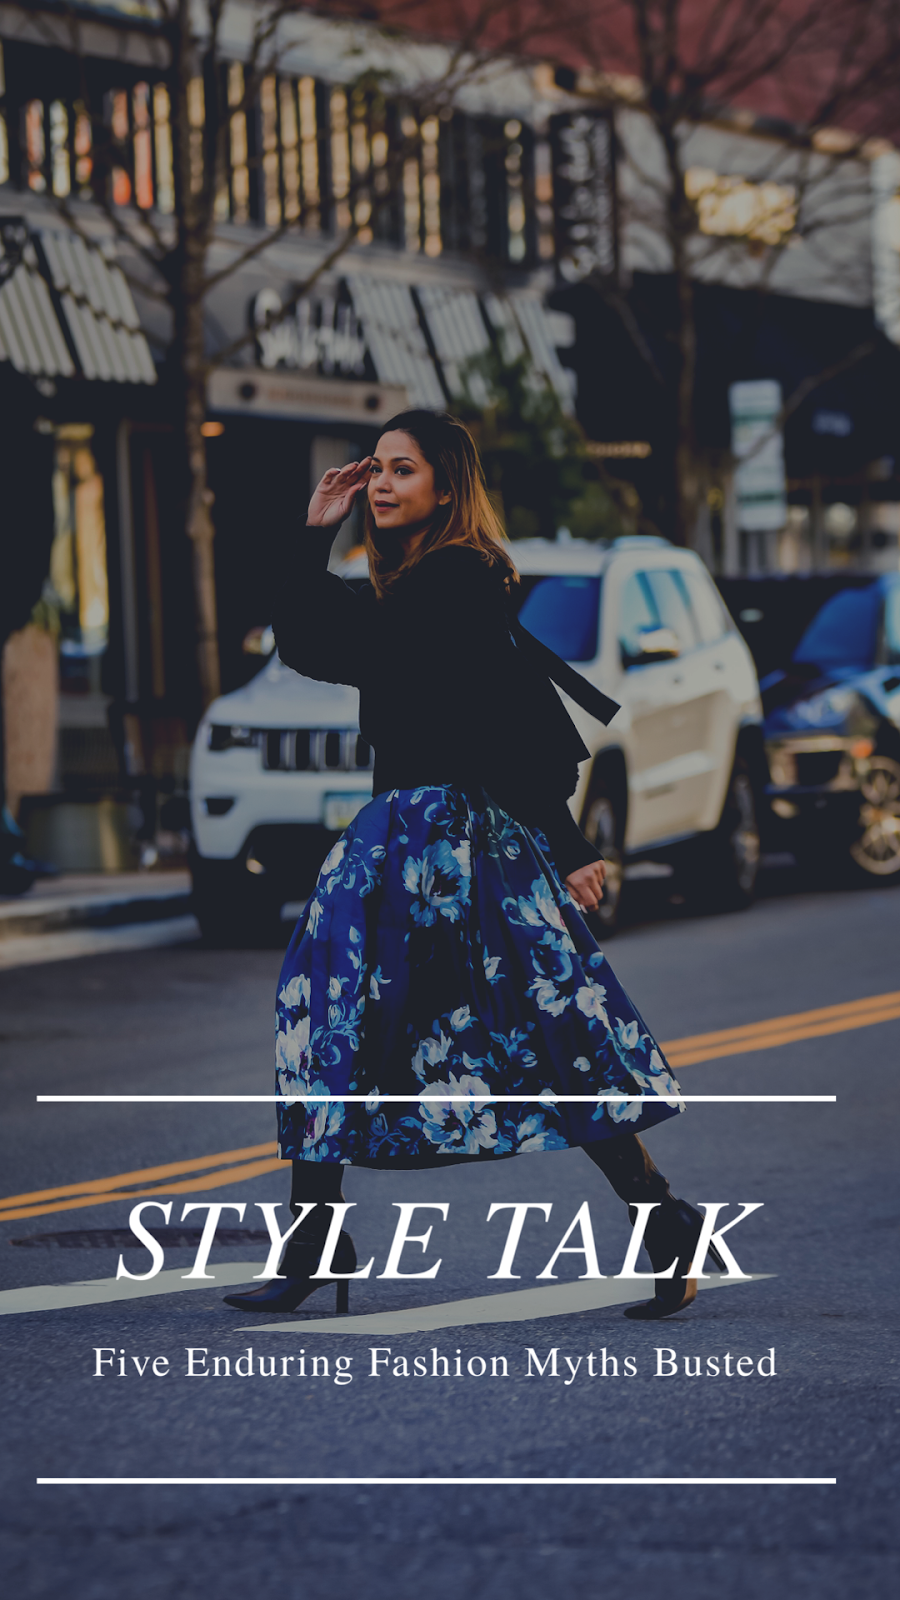 navy and black outfit, bow sweater, tipi boots, street style, street photography, style myths, myriad musings, saumya shiohare